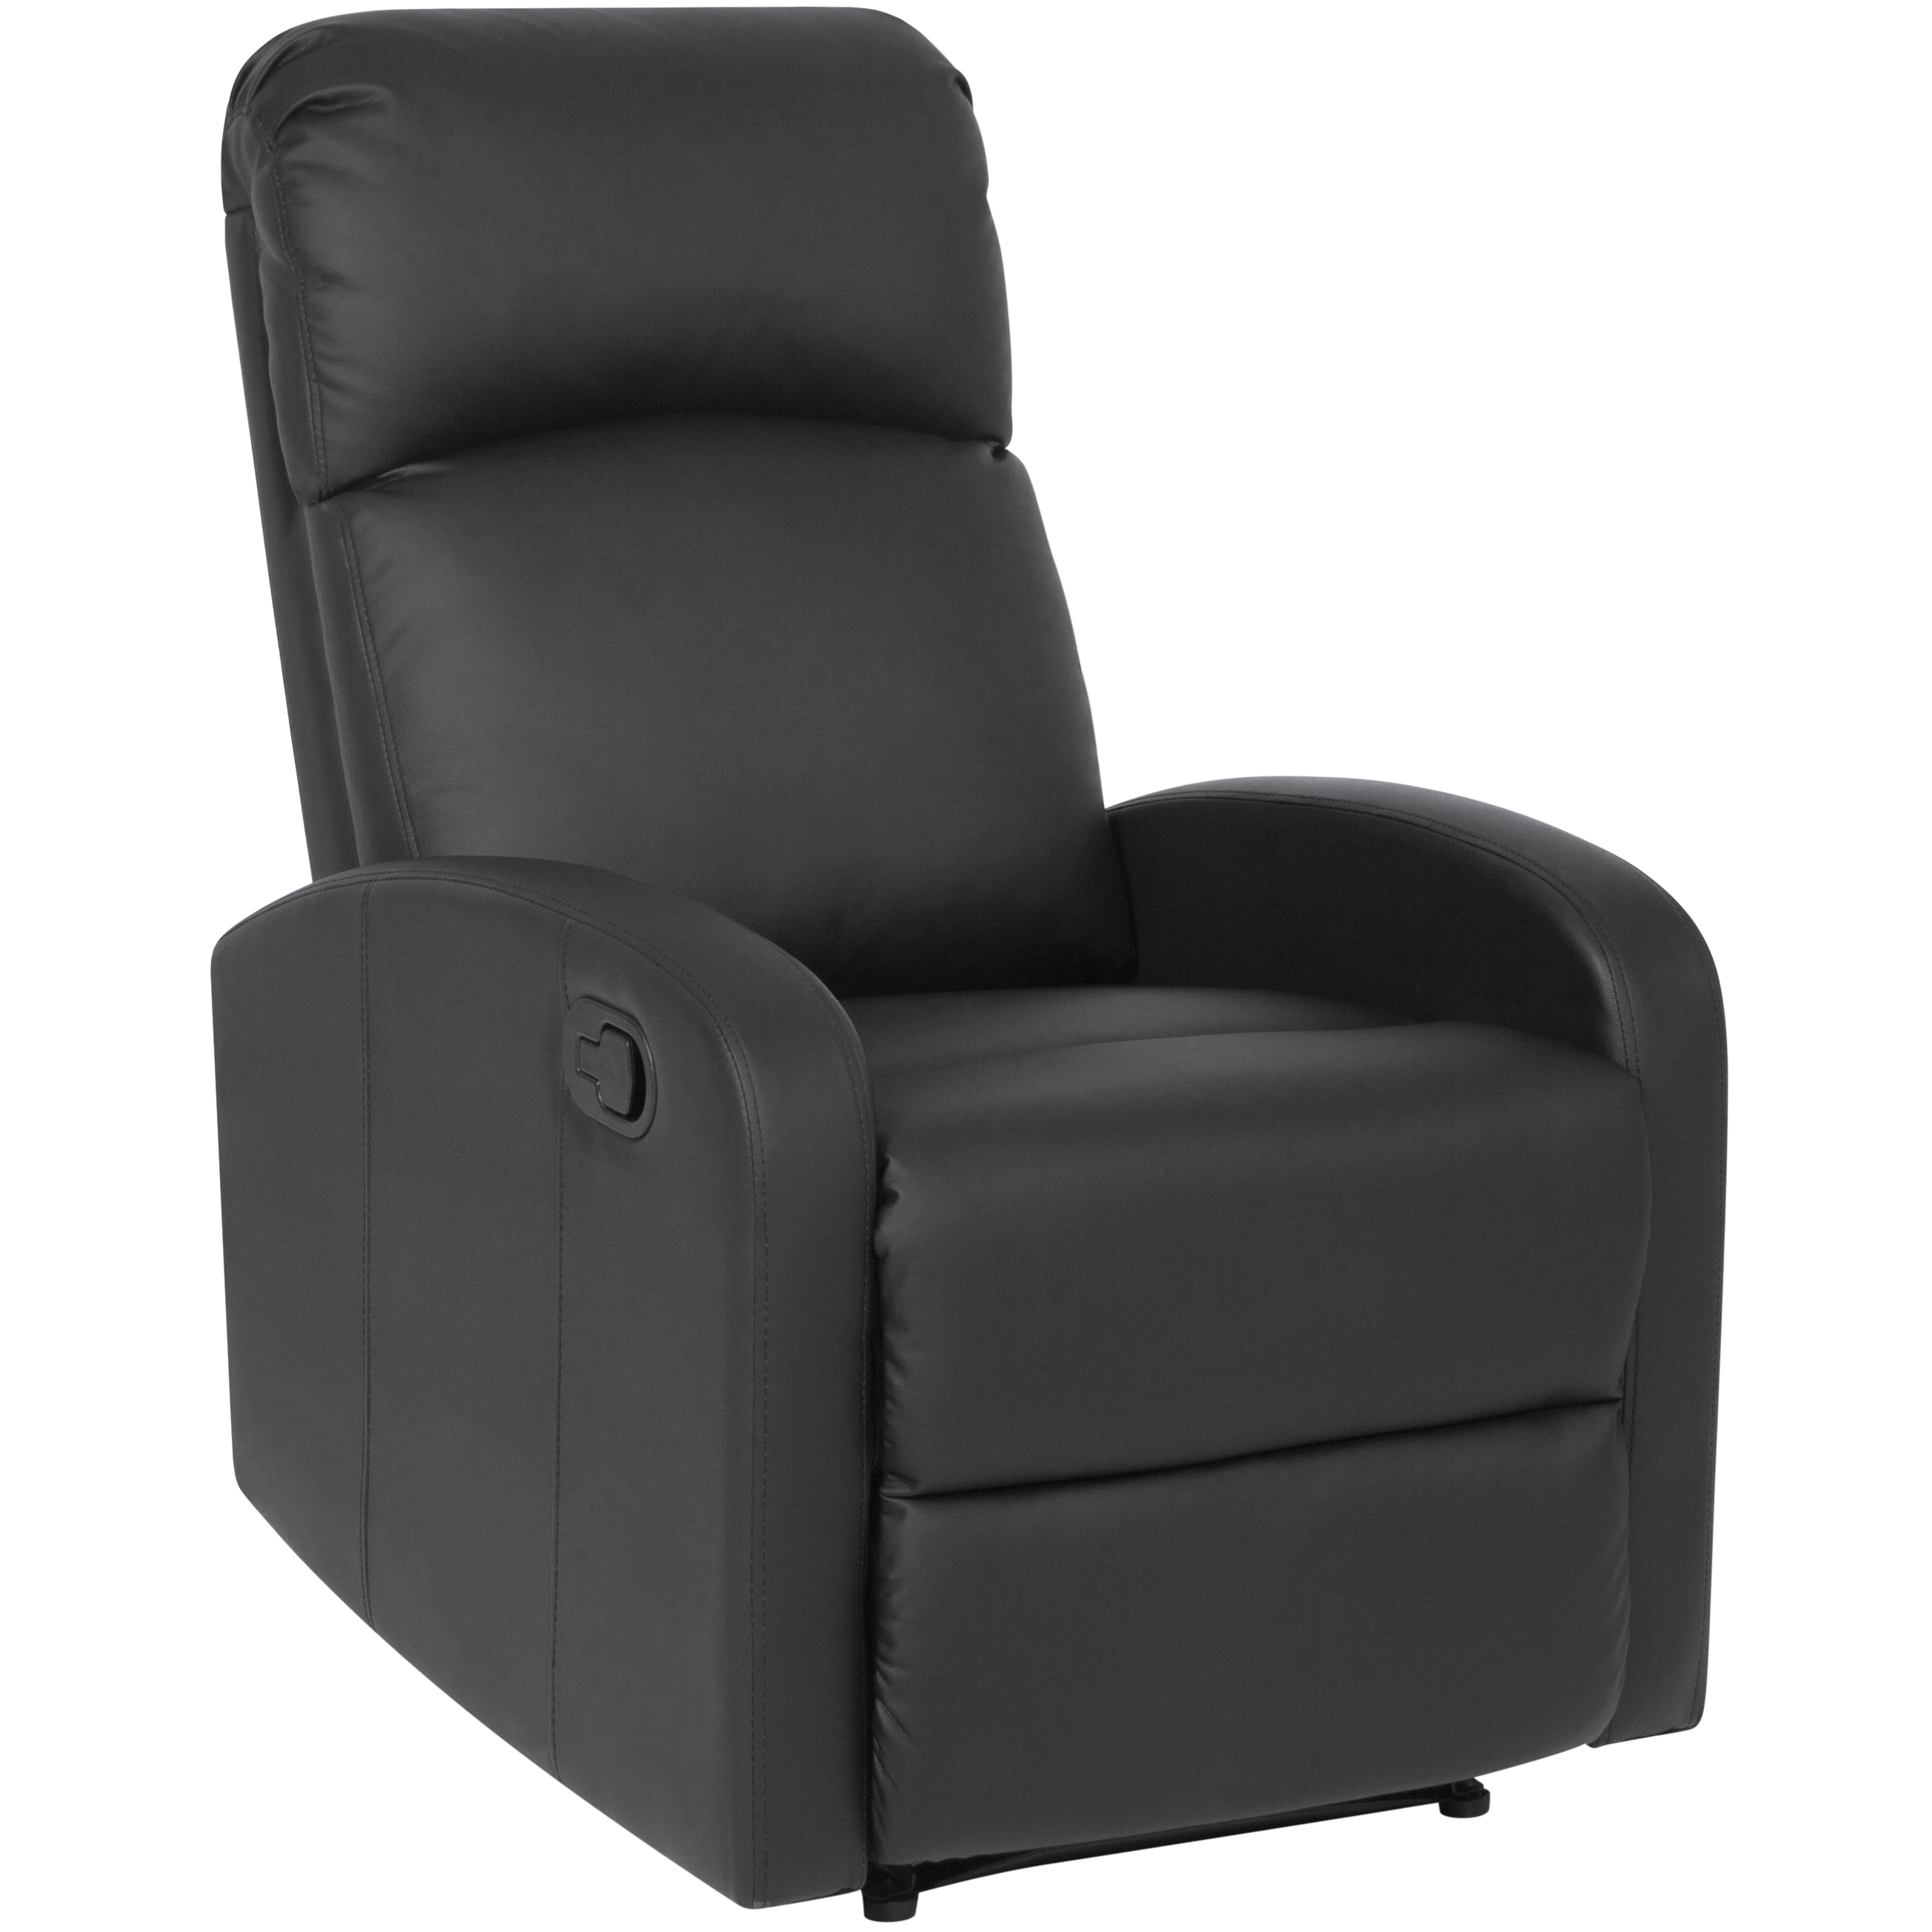 Top Bedroom Chairs Choices: Best Choice Products Home Theater Leather Recliner Chair